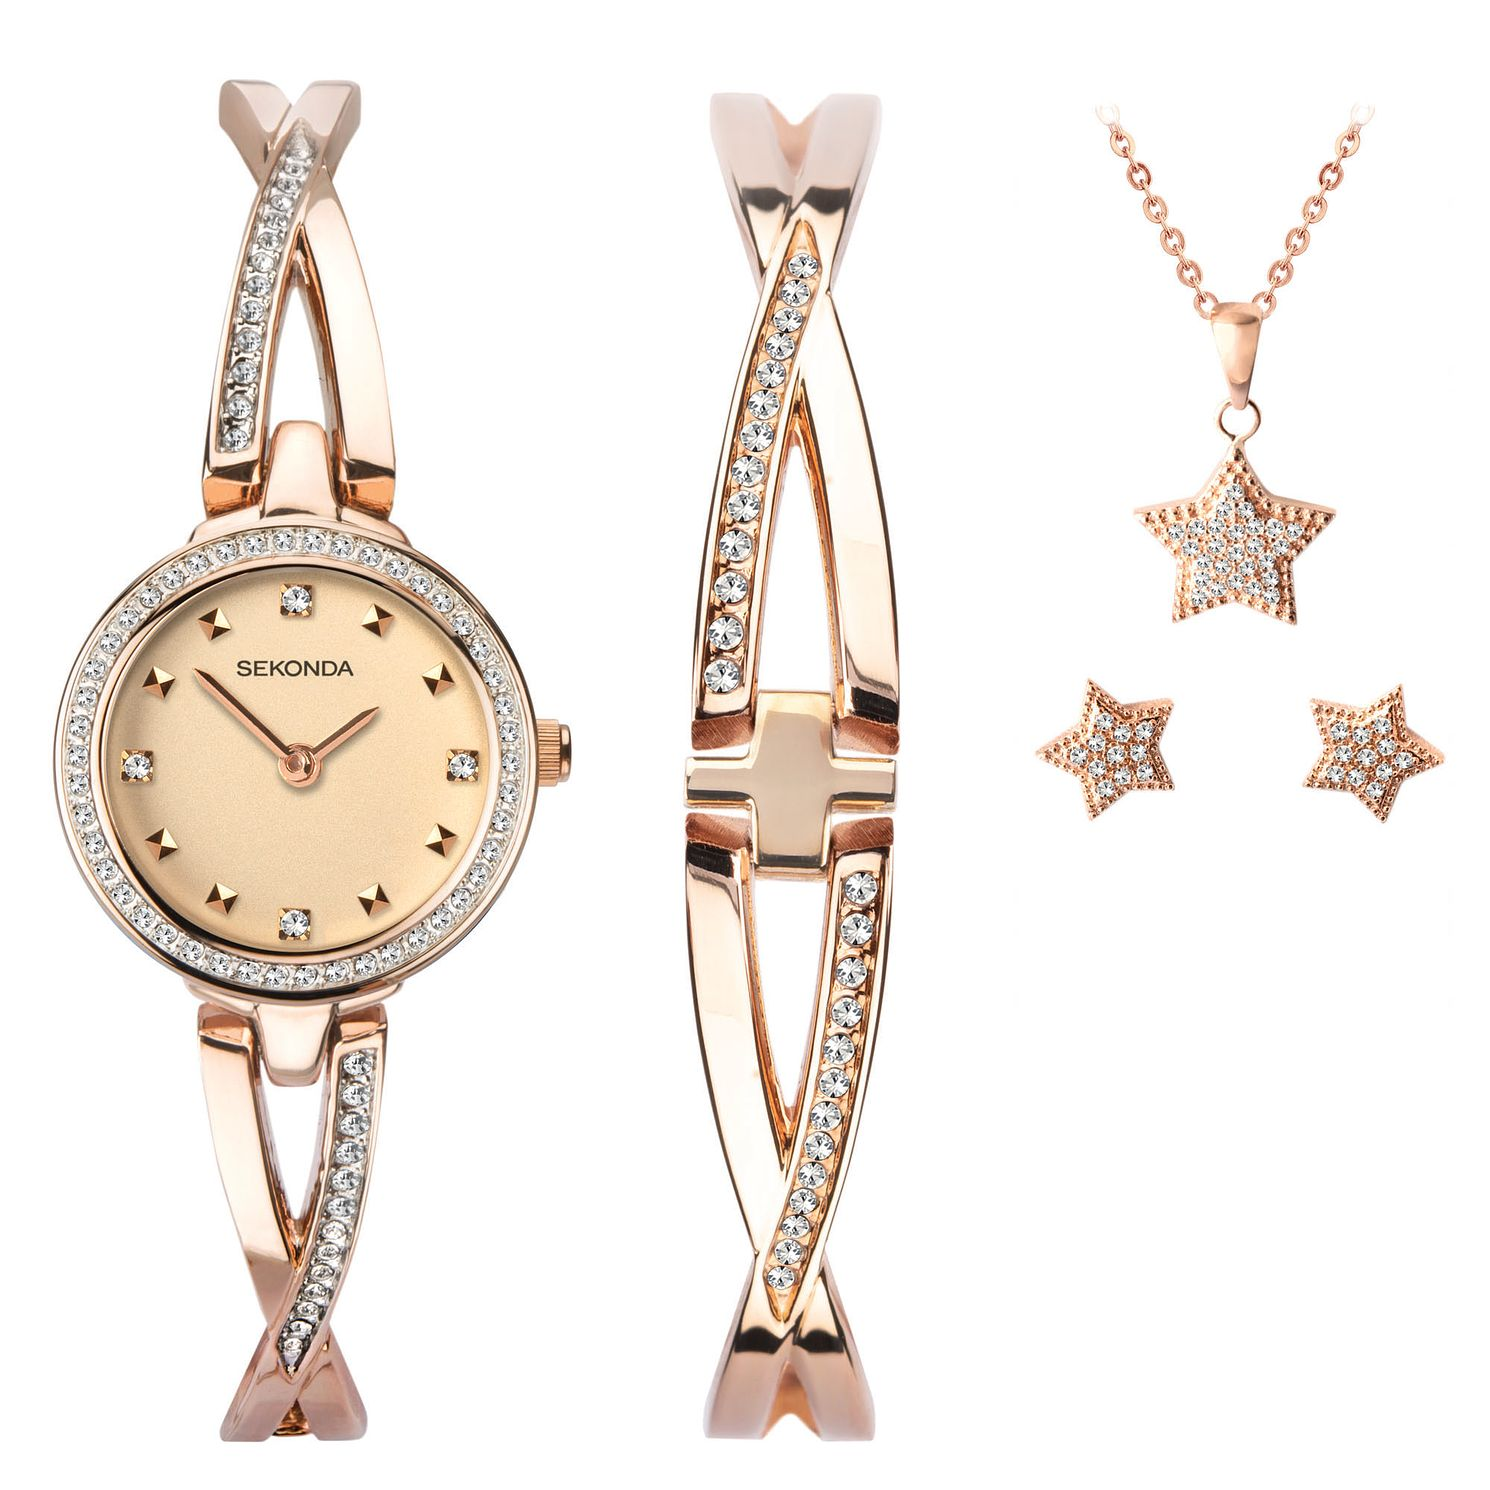 Sekonda Crystal Star Ladies' Watch & Jewellery Gift Set - Product number 5320453